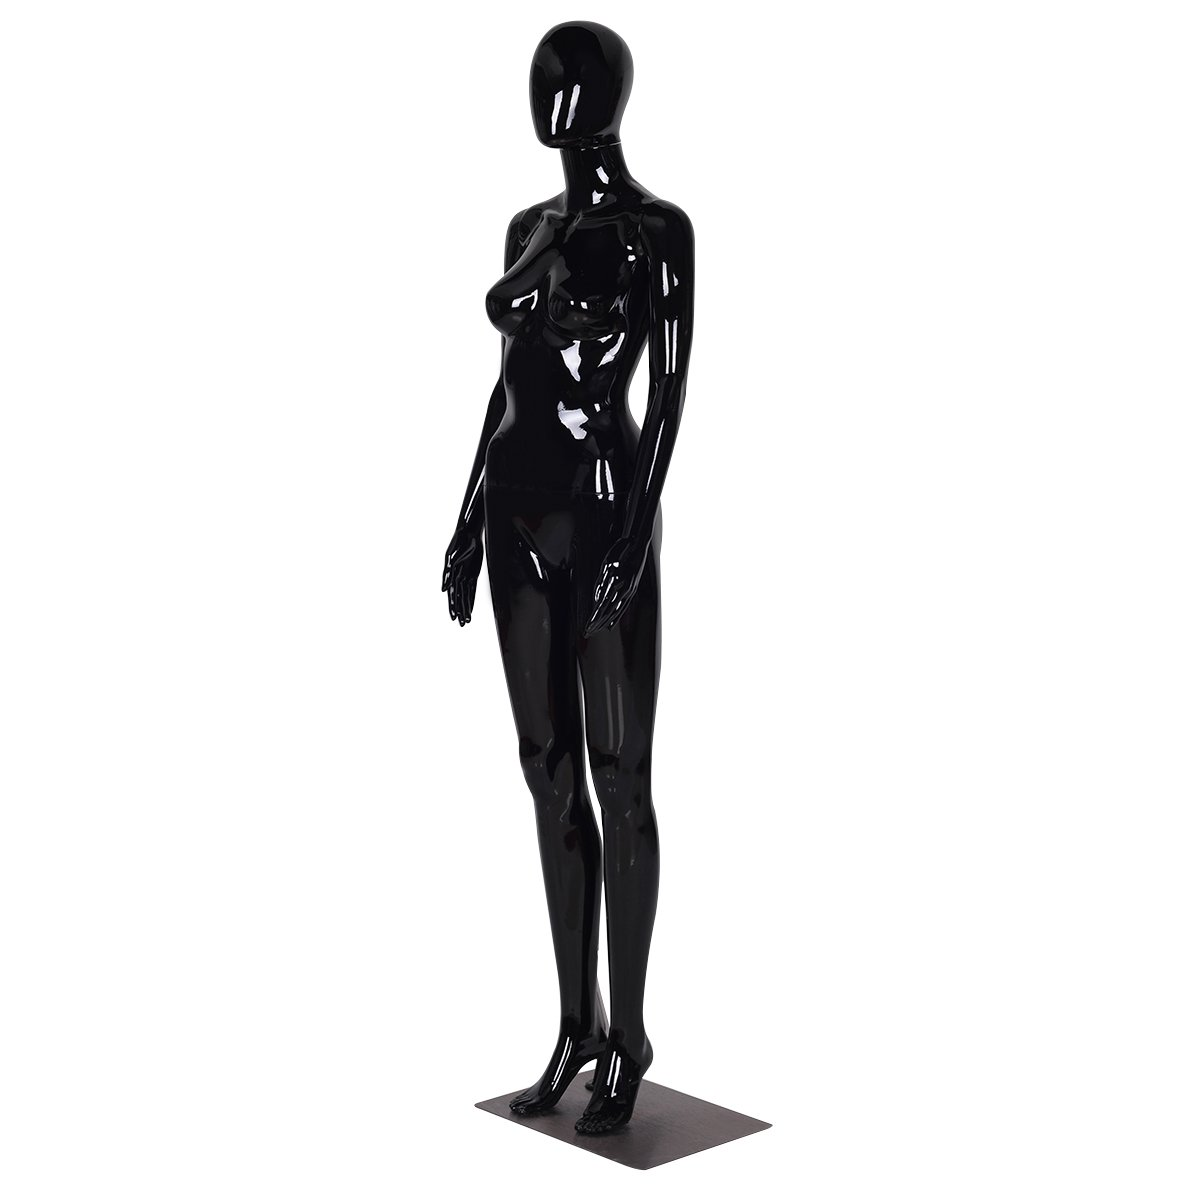 Giantex Female Mannequin Stand Dress Form Egghead Plastic Full Body Display with Base, 6 Ft (Black,Casual Two Hands Mannequin) HW55367BK